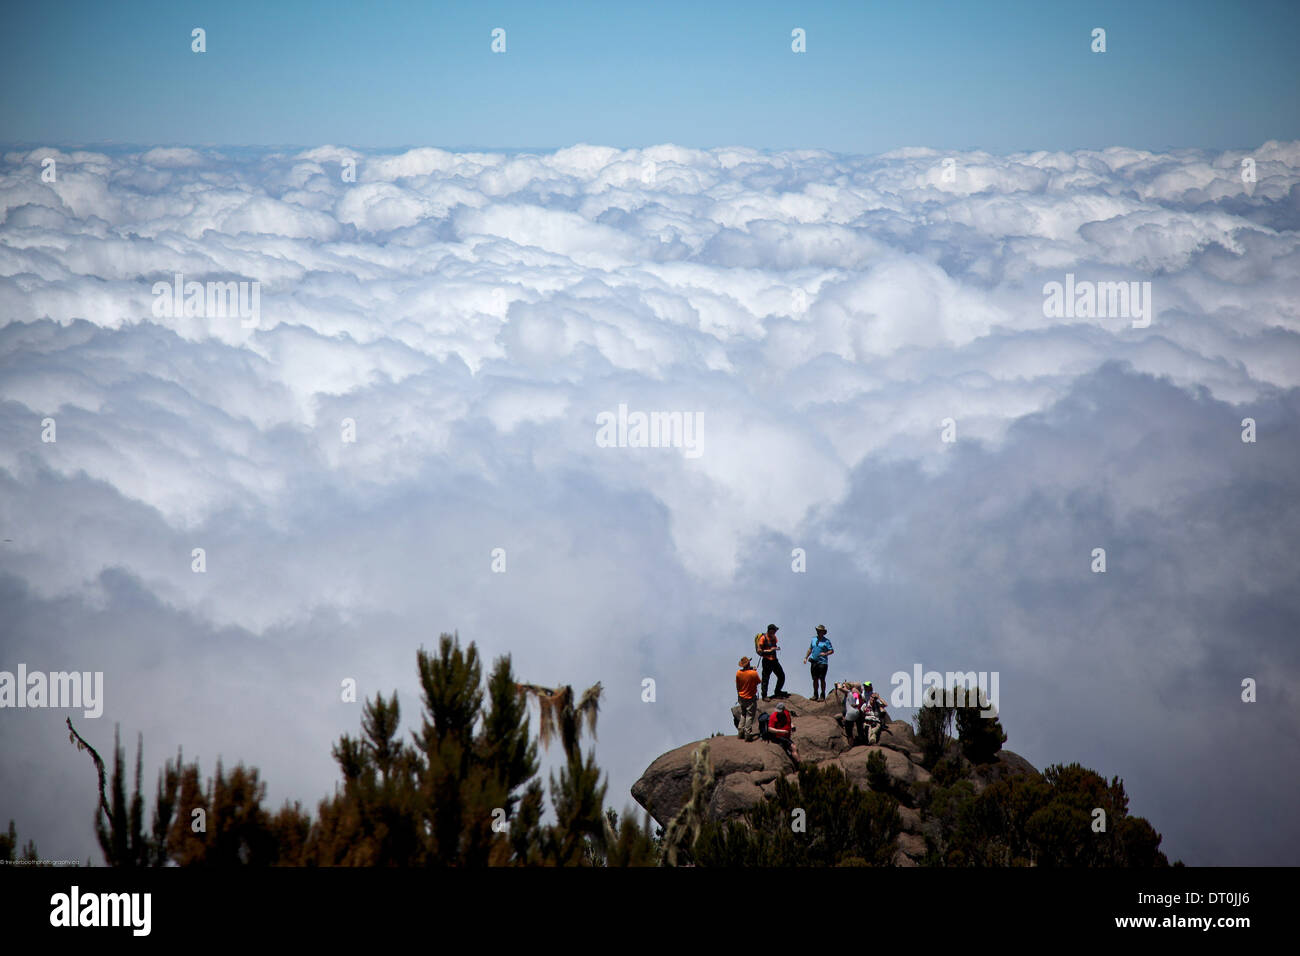 climbers enjoying the above the clouds view on Mount Kilimanjaro - Stock Image